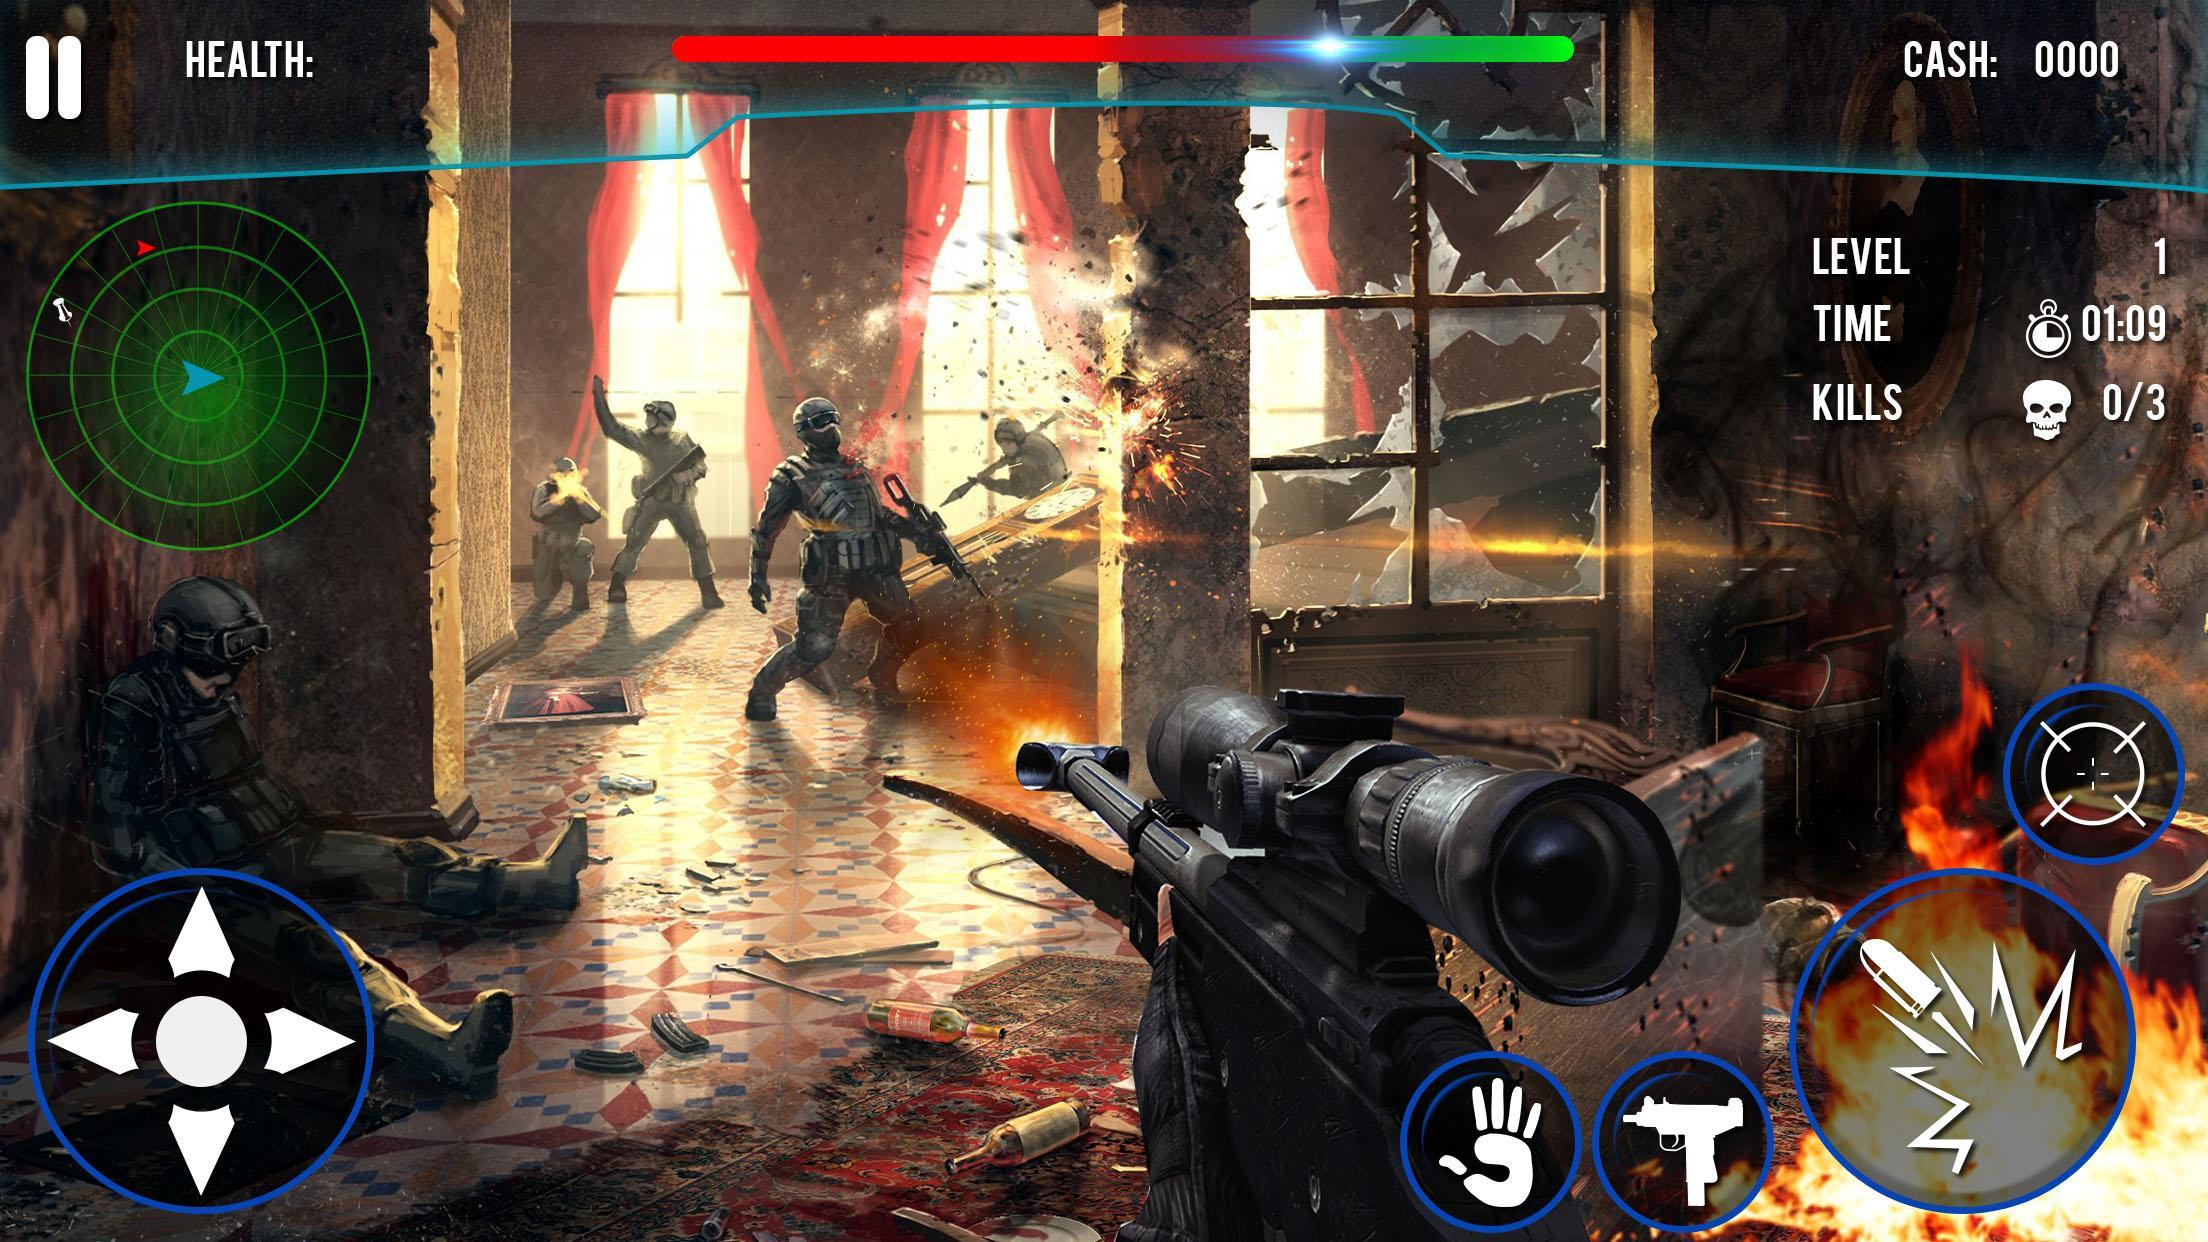 Yalghar The Revenge of SSG Commando shooter for Android - APK Download